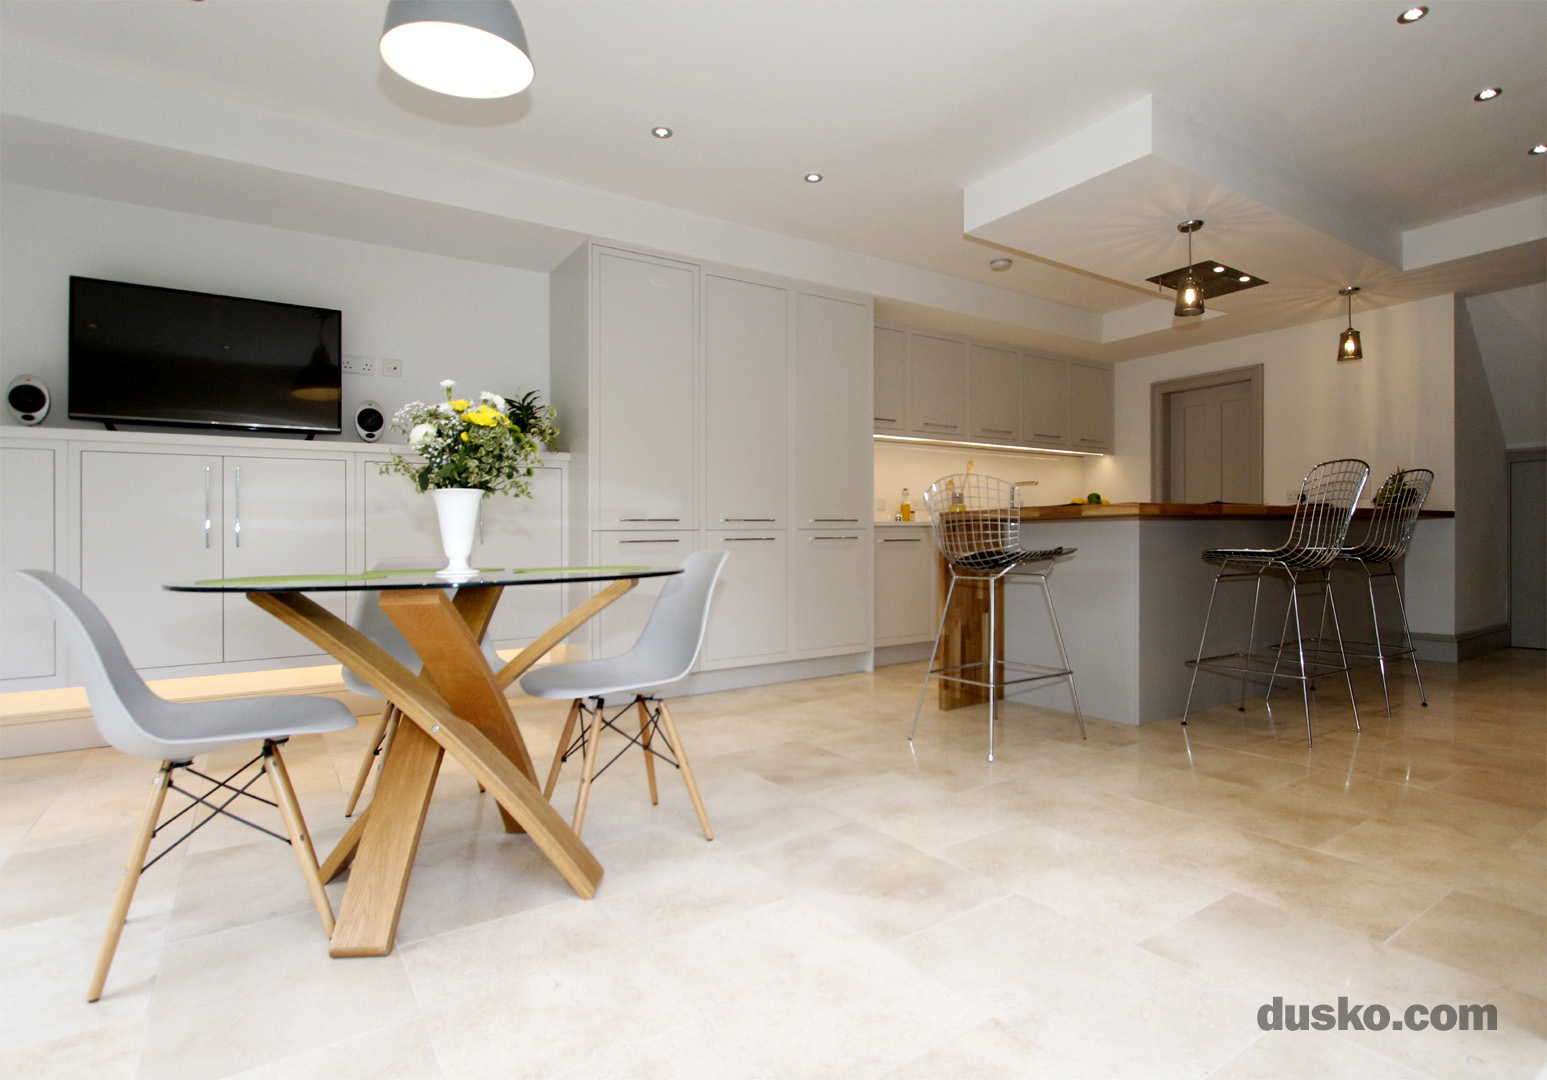 Contemporary Open Plan Kitchen and Dining Area in Handforth, Cheshire Design